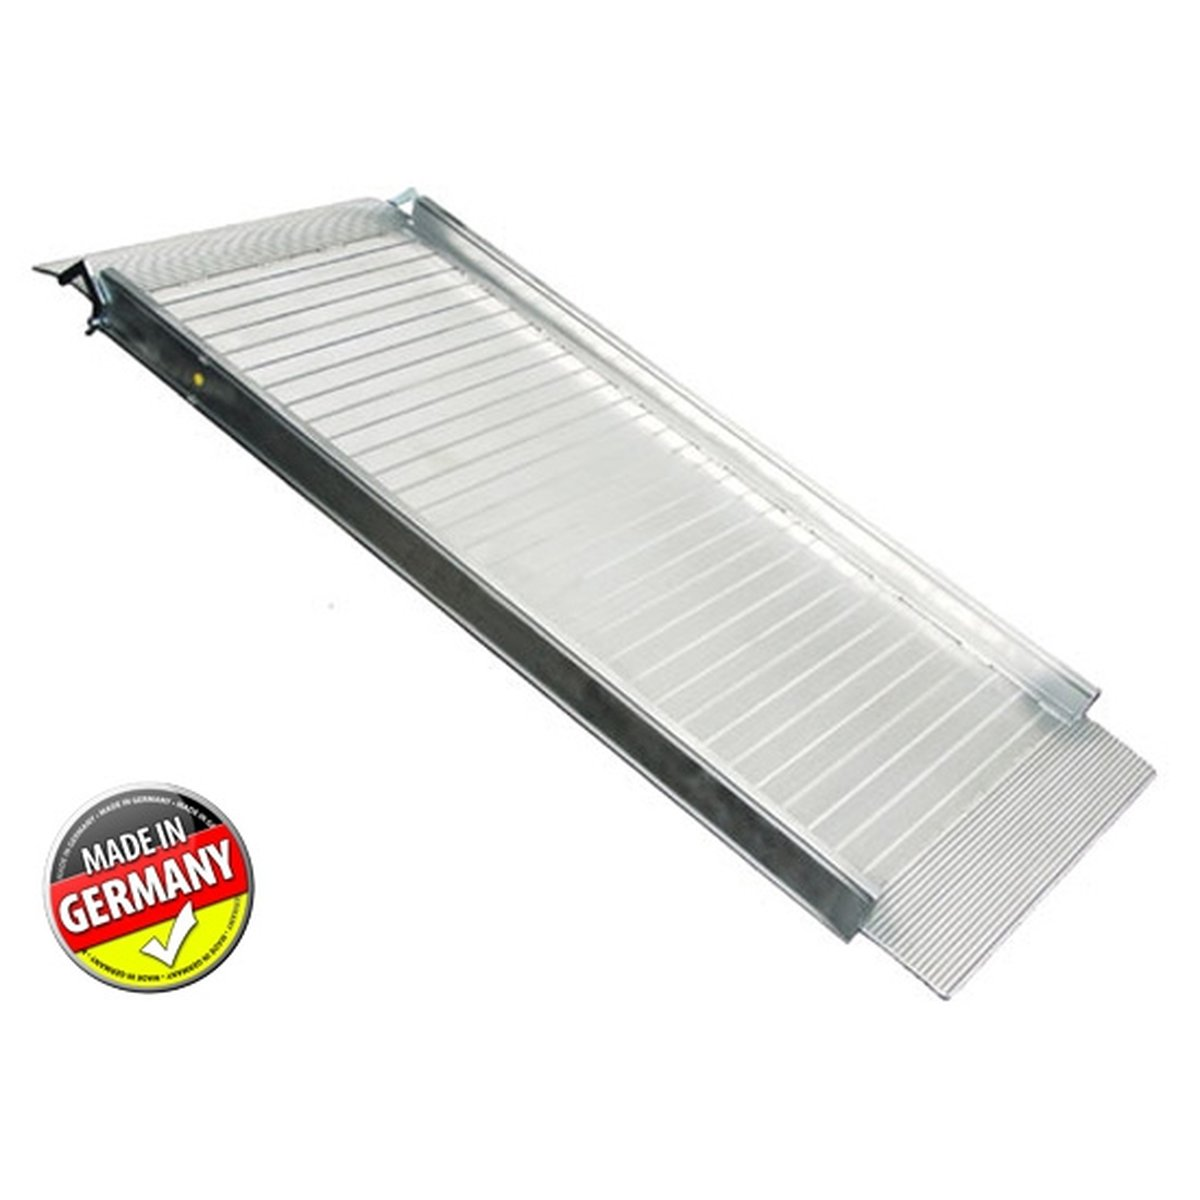 SweetPRO LBL-300 Light Ladebrücke/Laderampe, Länge: 292cm